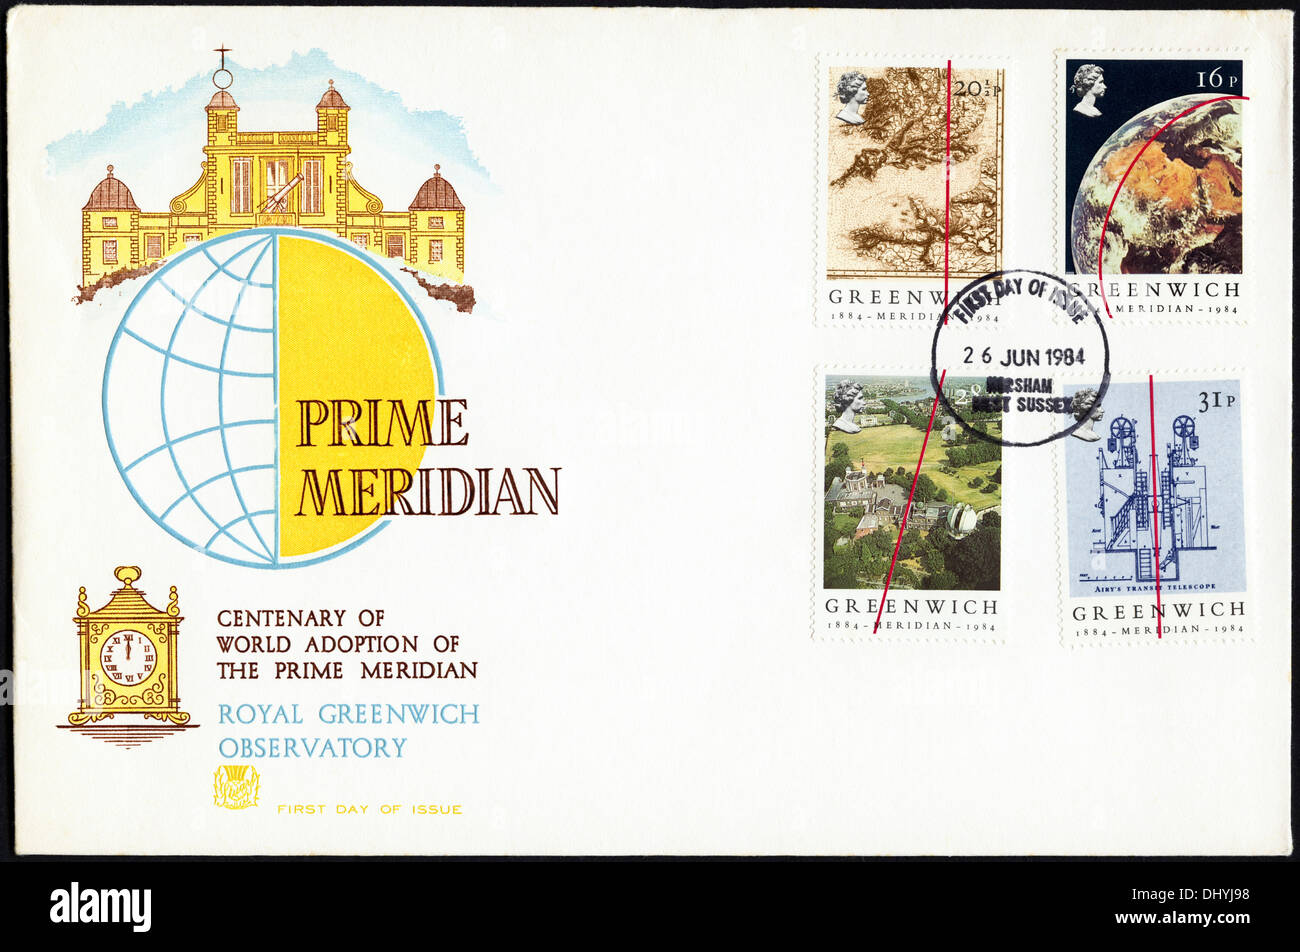 Commemorative 16p 20½p 28p & 31p postage stamp first day cover for Greenwich Meridian issue postmark Horsham West Sussex 26 June 1984 - Stock Image